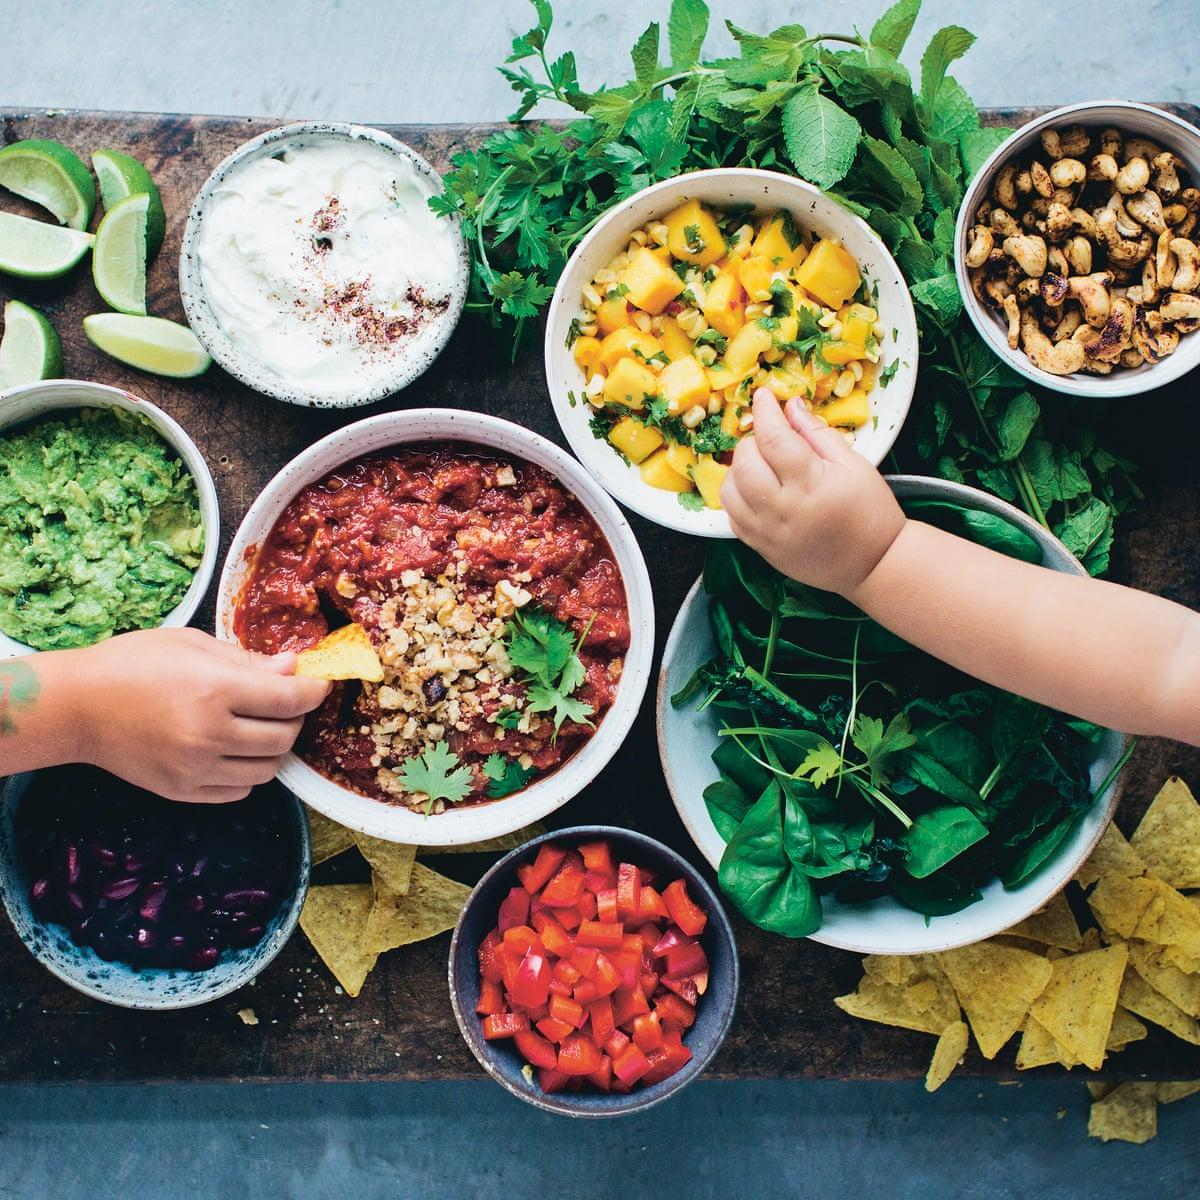 A simple bean salad and a build-your-own tortilla bowl: 20 best vegetarian  and vegan recipes – part 3 | Vegetarian food and drink | The Guardian